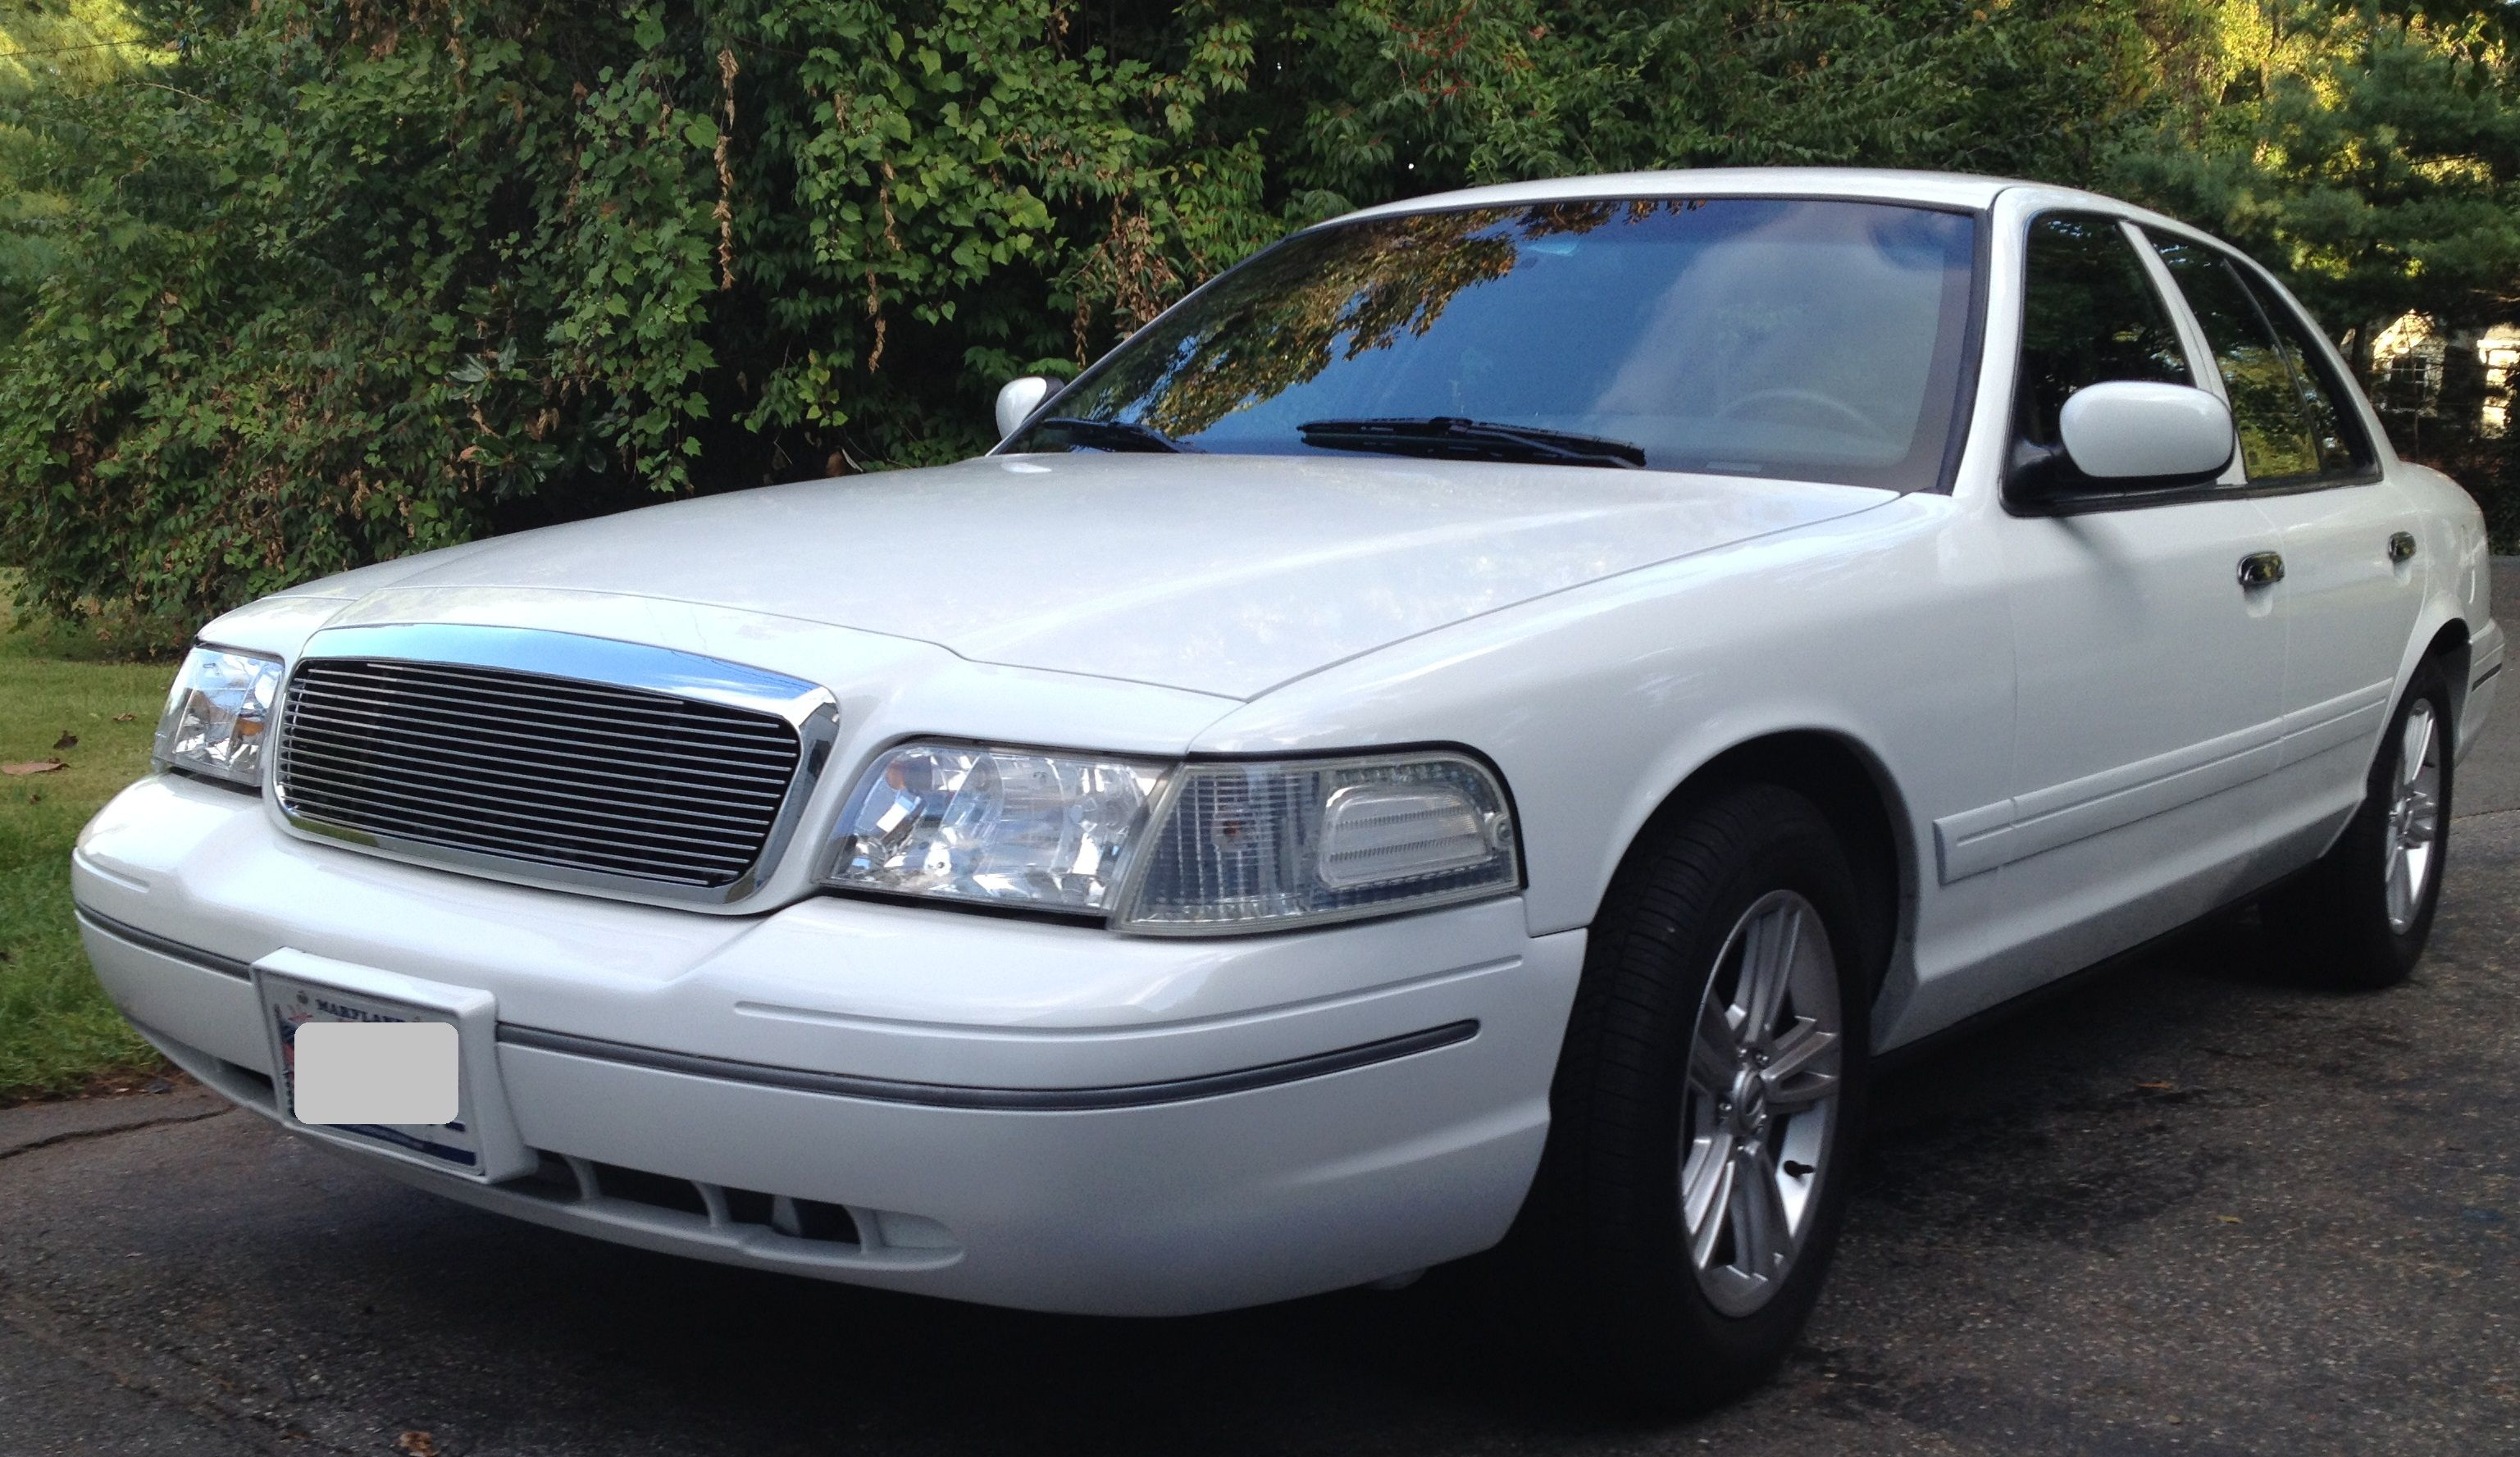 Ford crown victoria with polished billet grille by genx trims